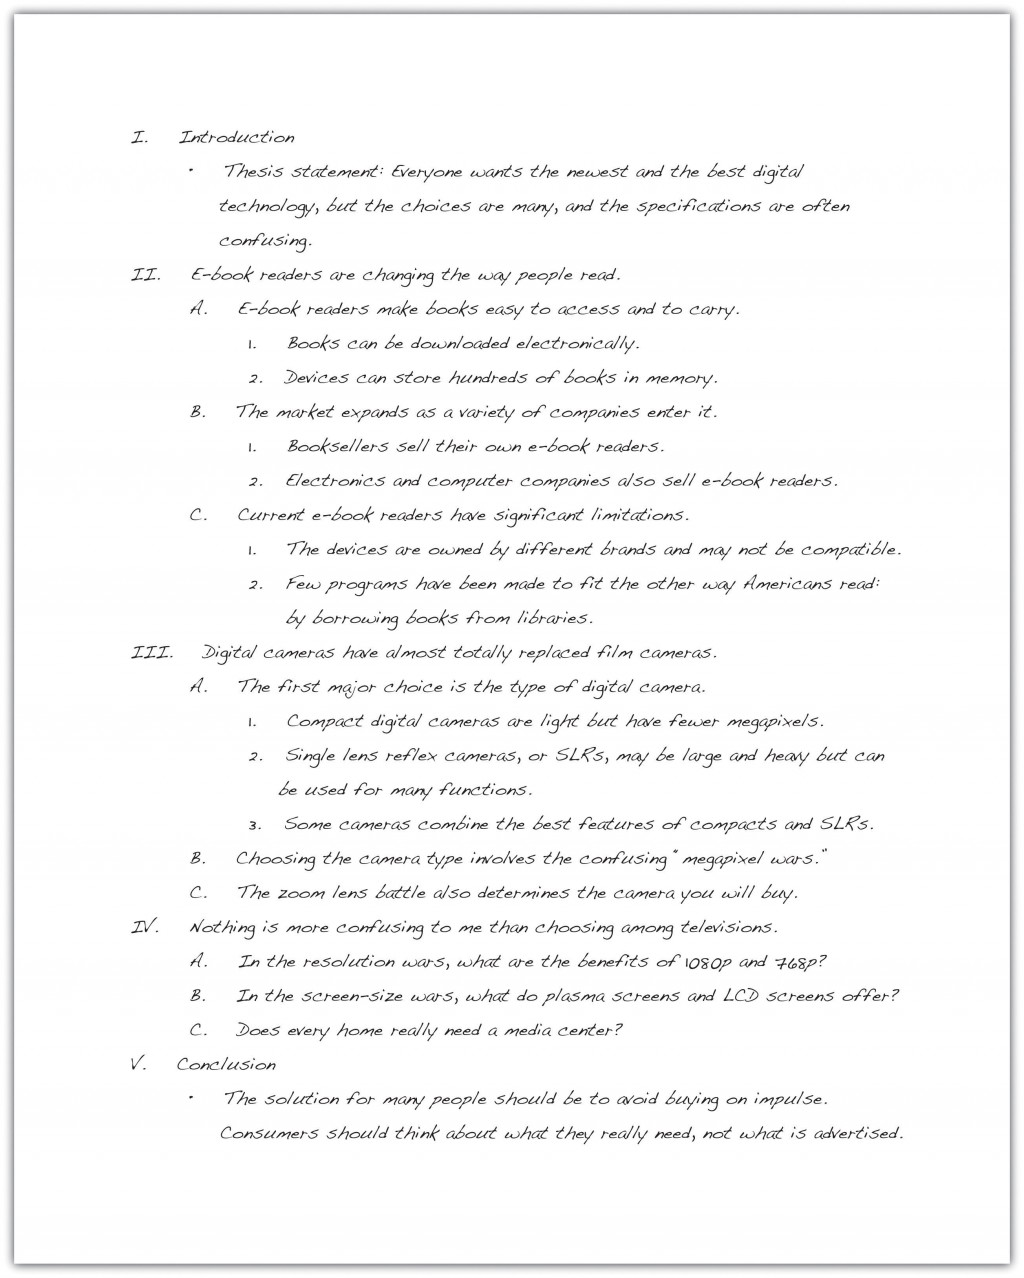 006 Essay Example How Many Sentencesre In Best Sentences Are A 5 Paragraph Short Large